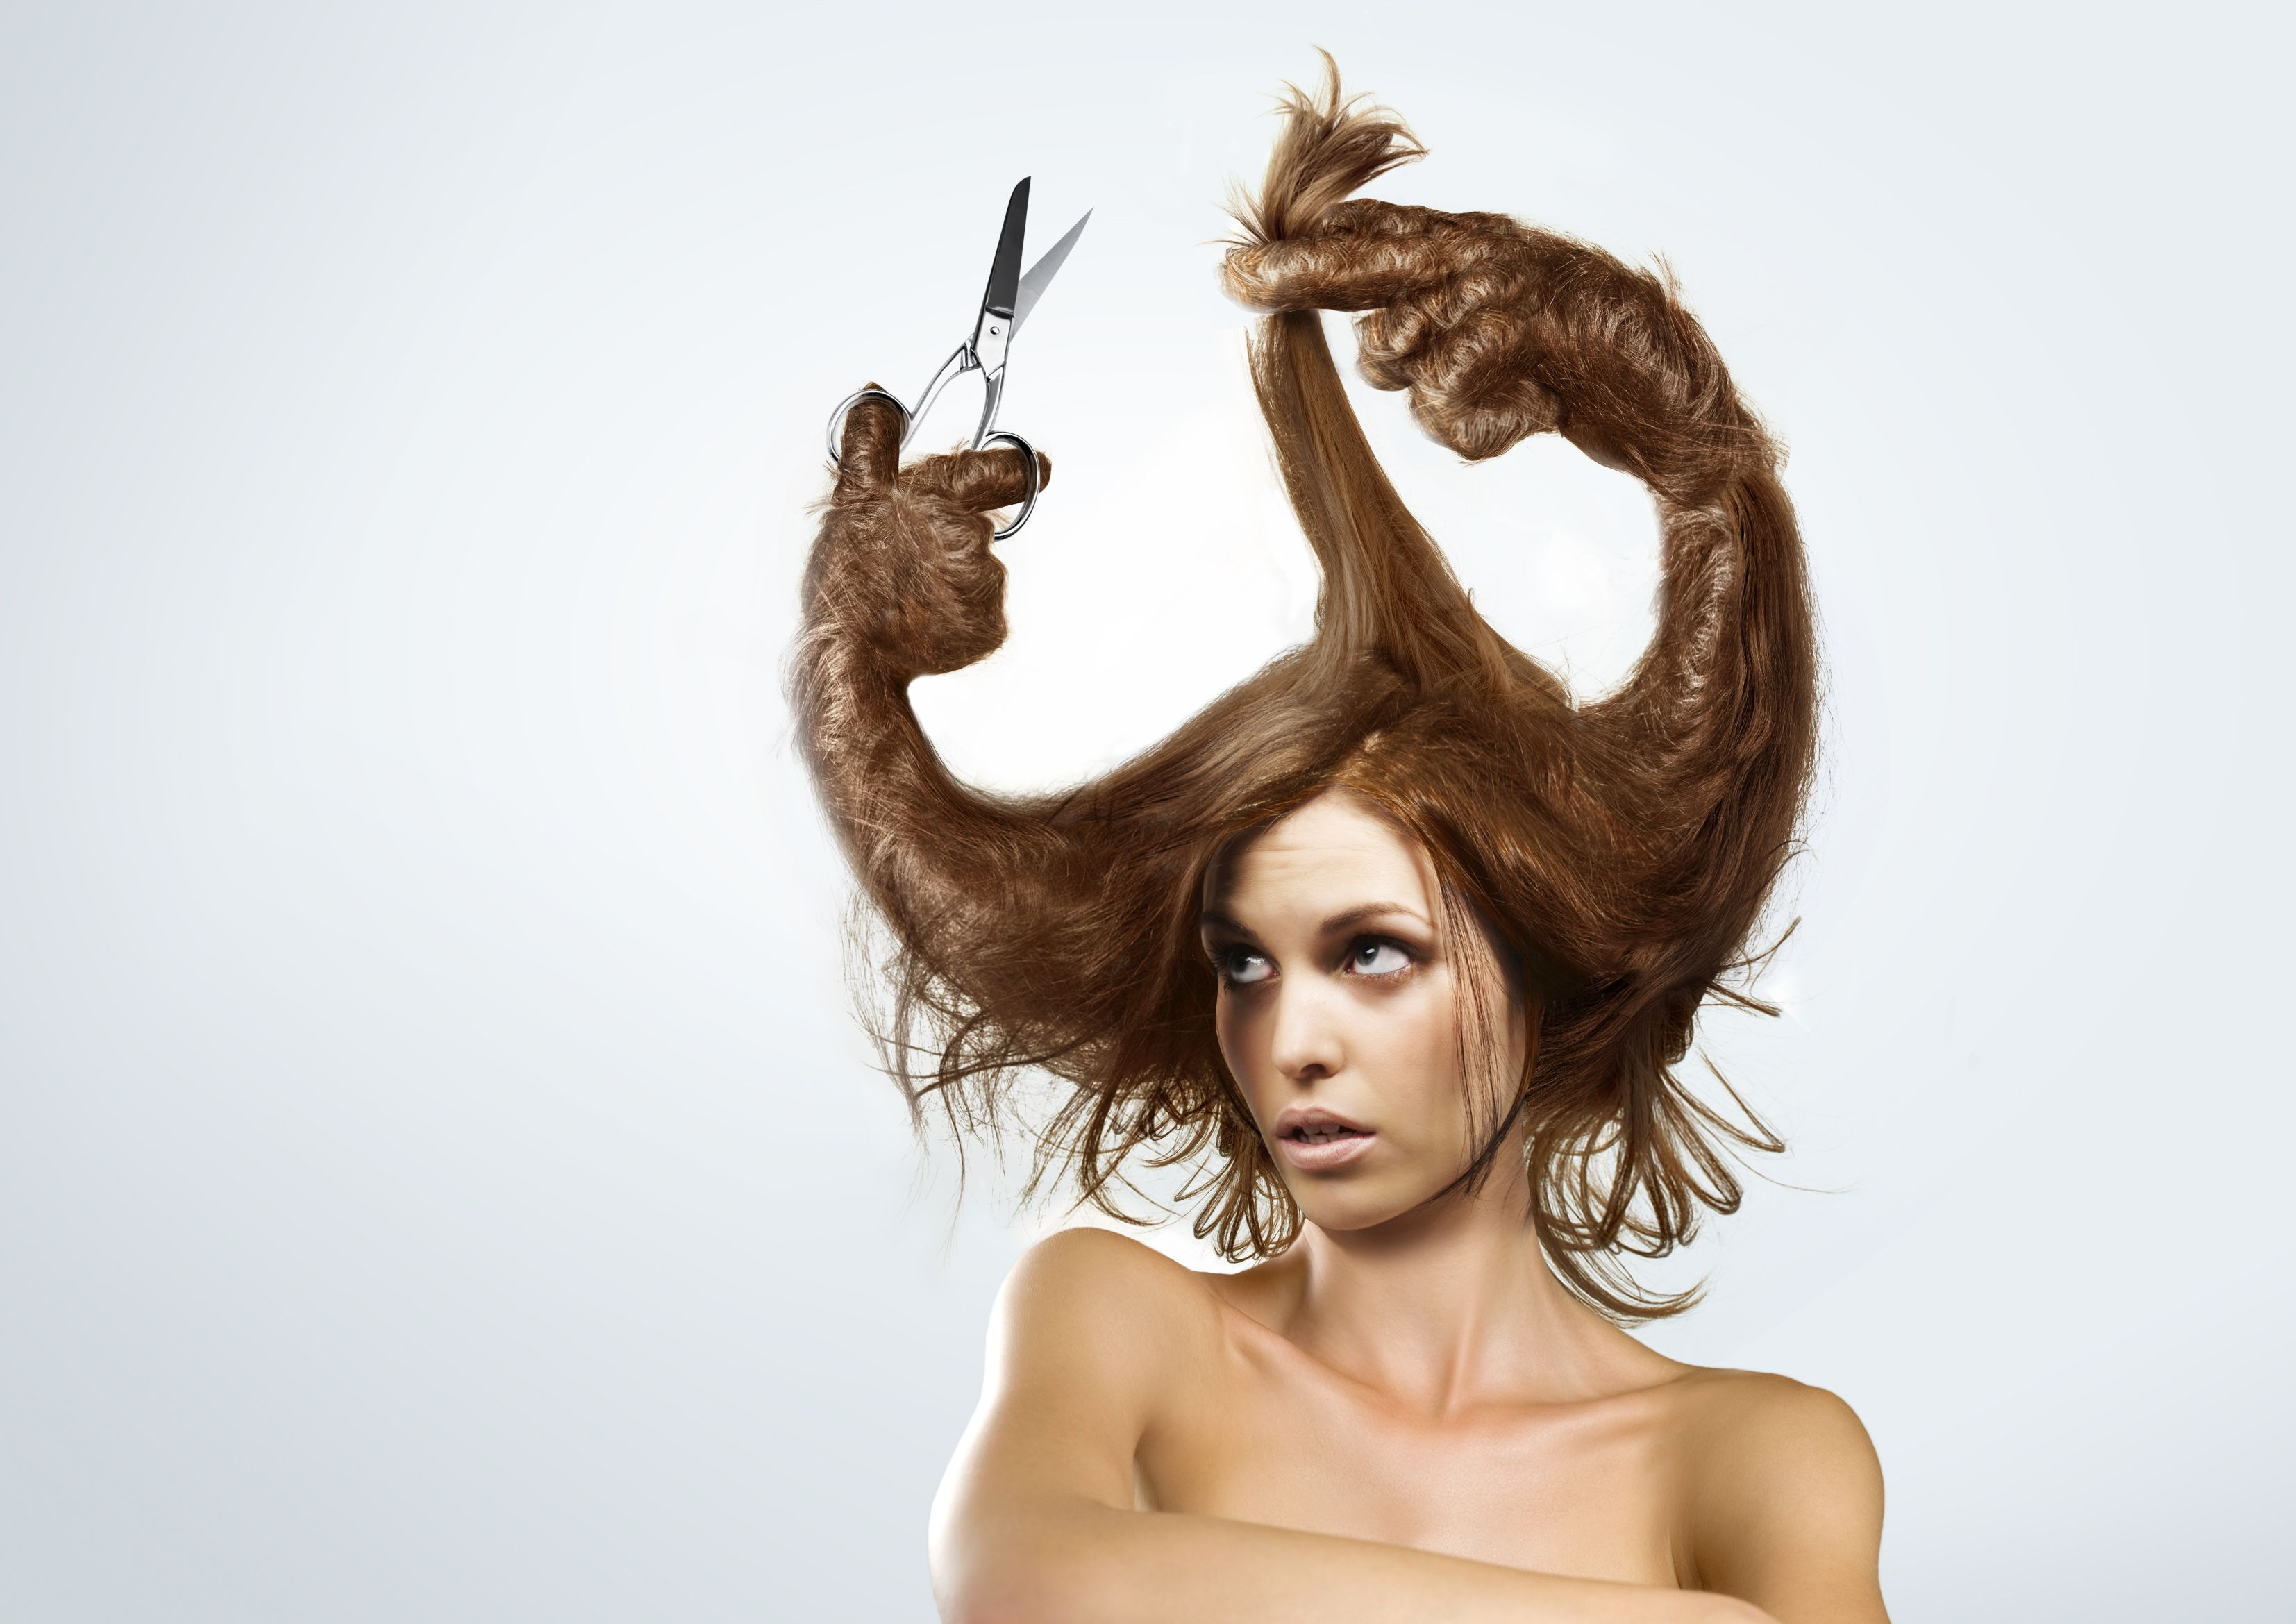 Check Out This Behance Project The Bad Hair Day S